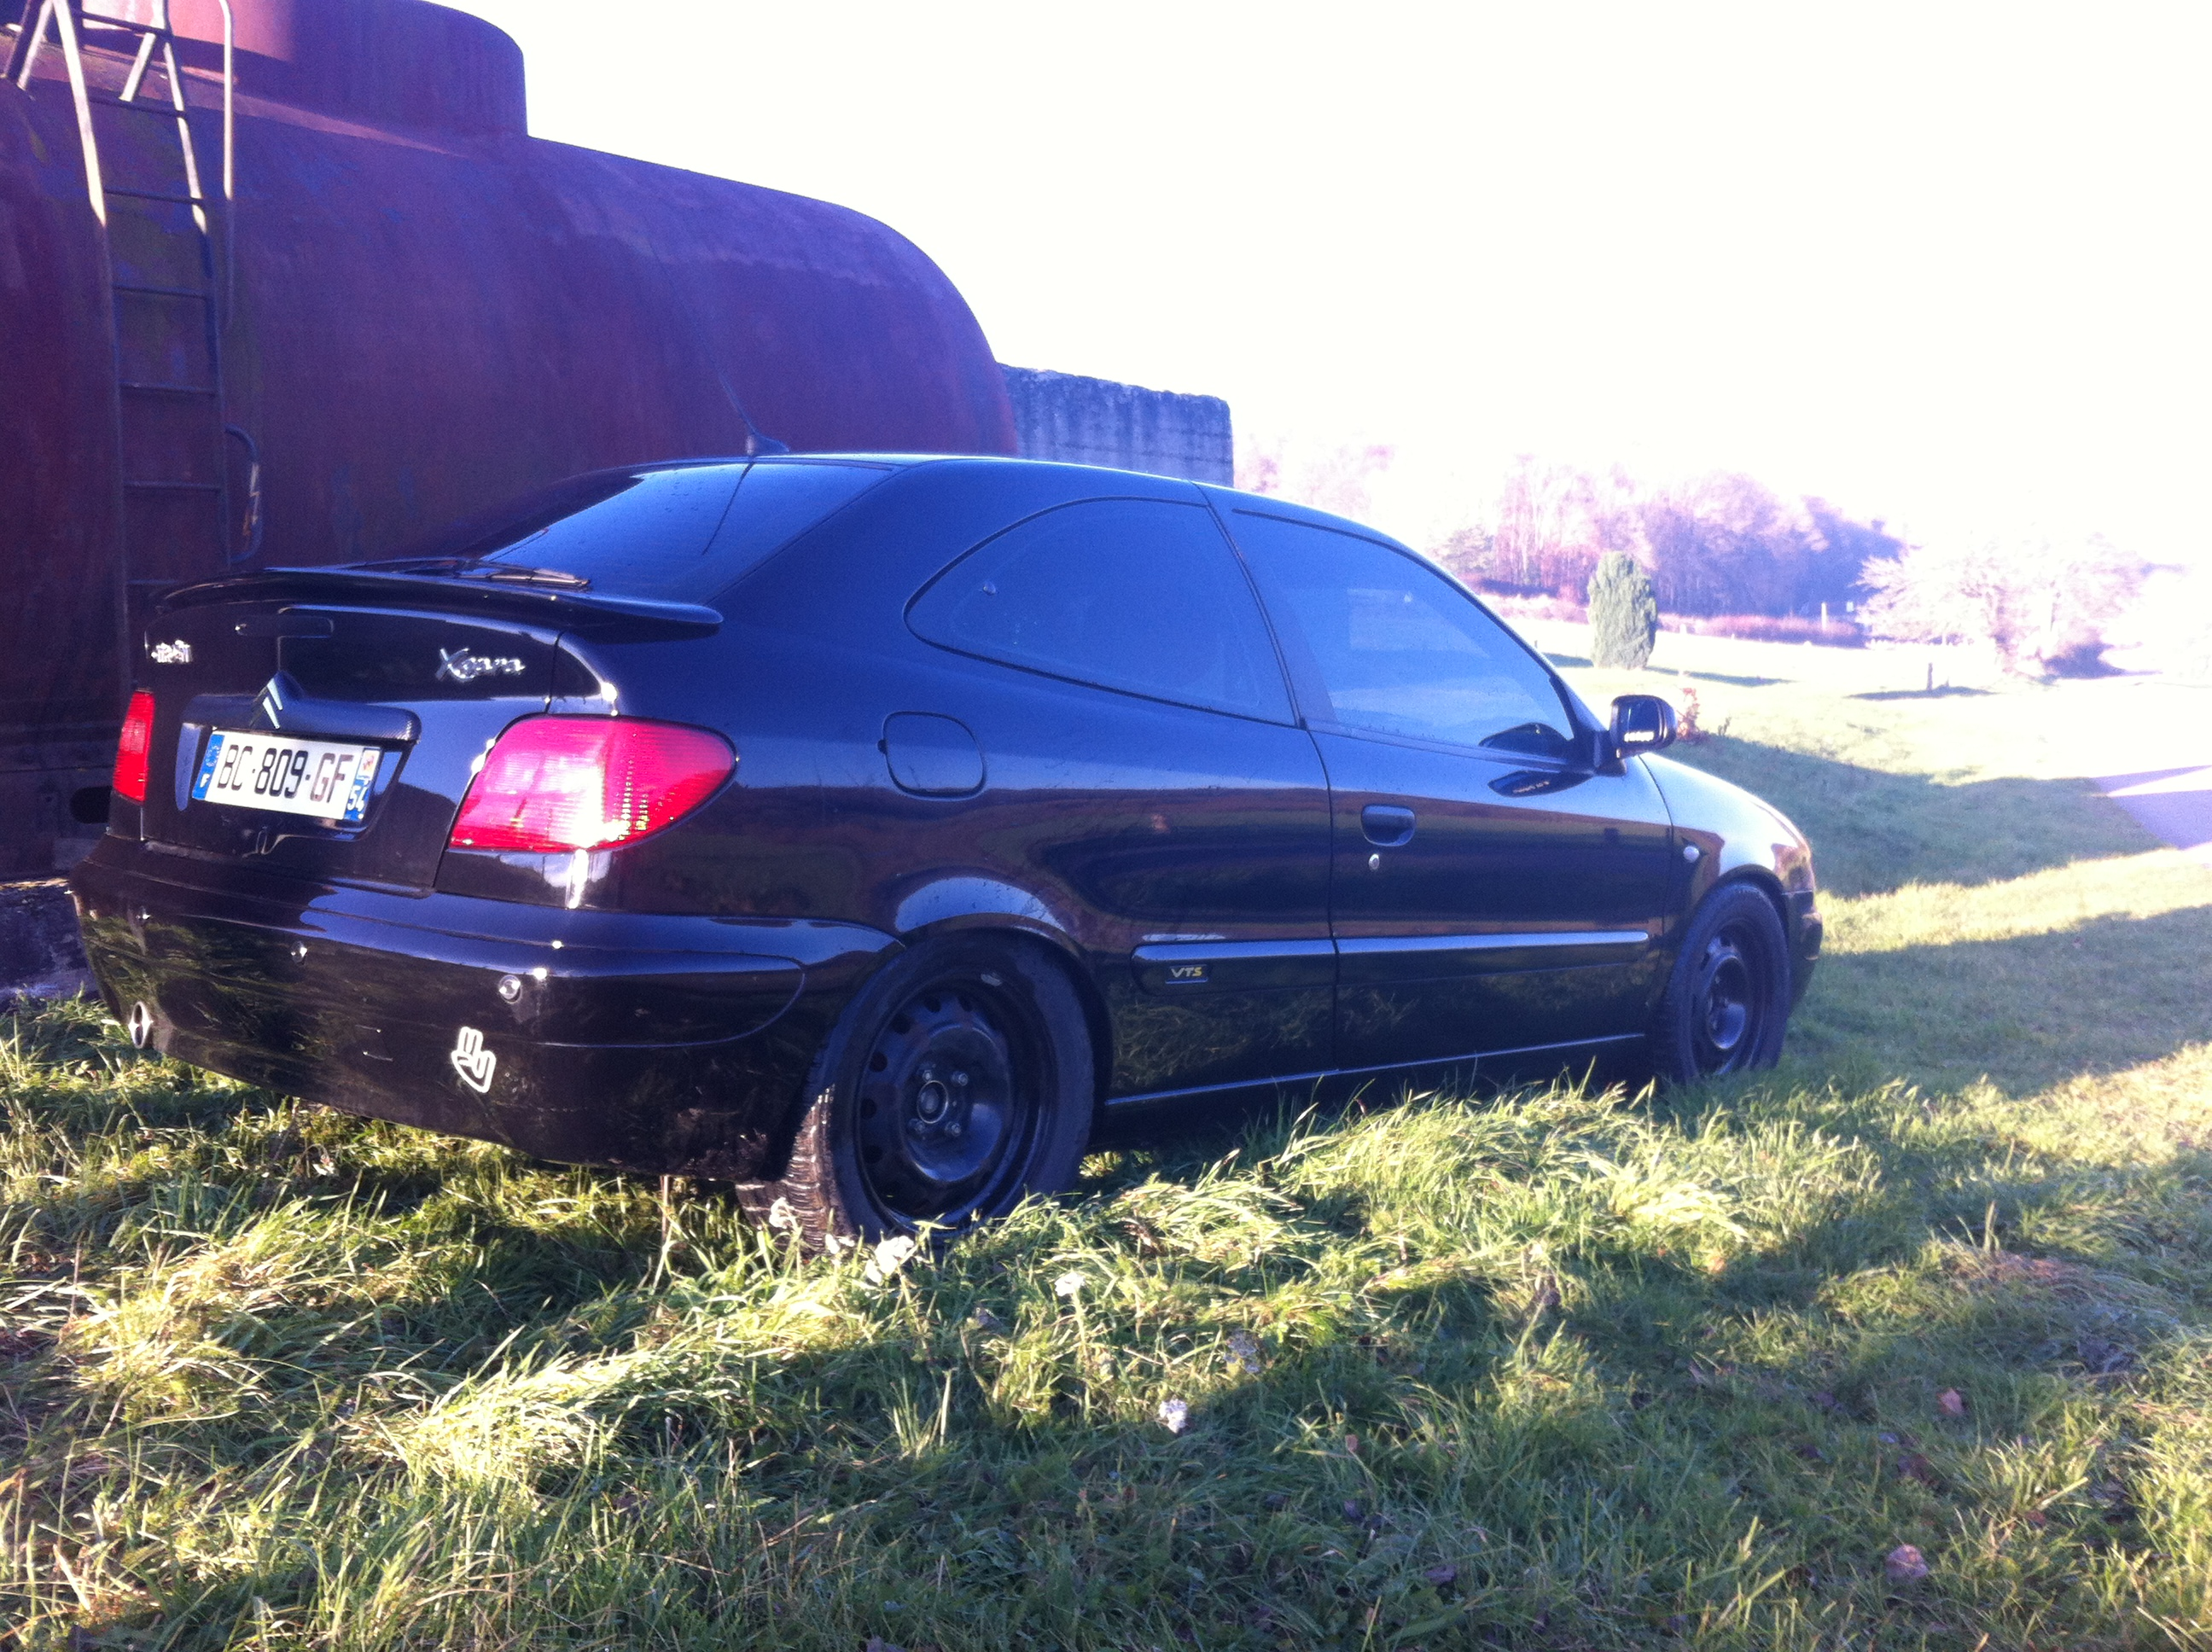 Avis sur Citroen xsara - German Look / Clean Look - Styles de tuning